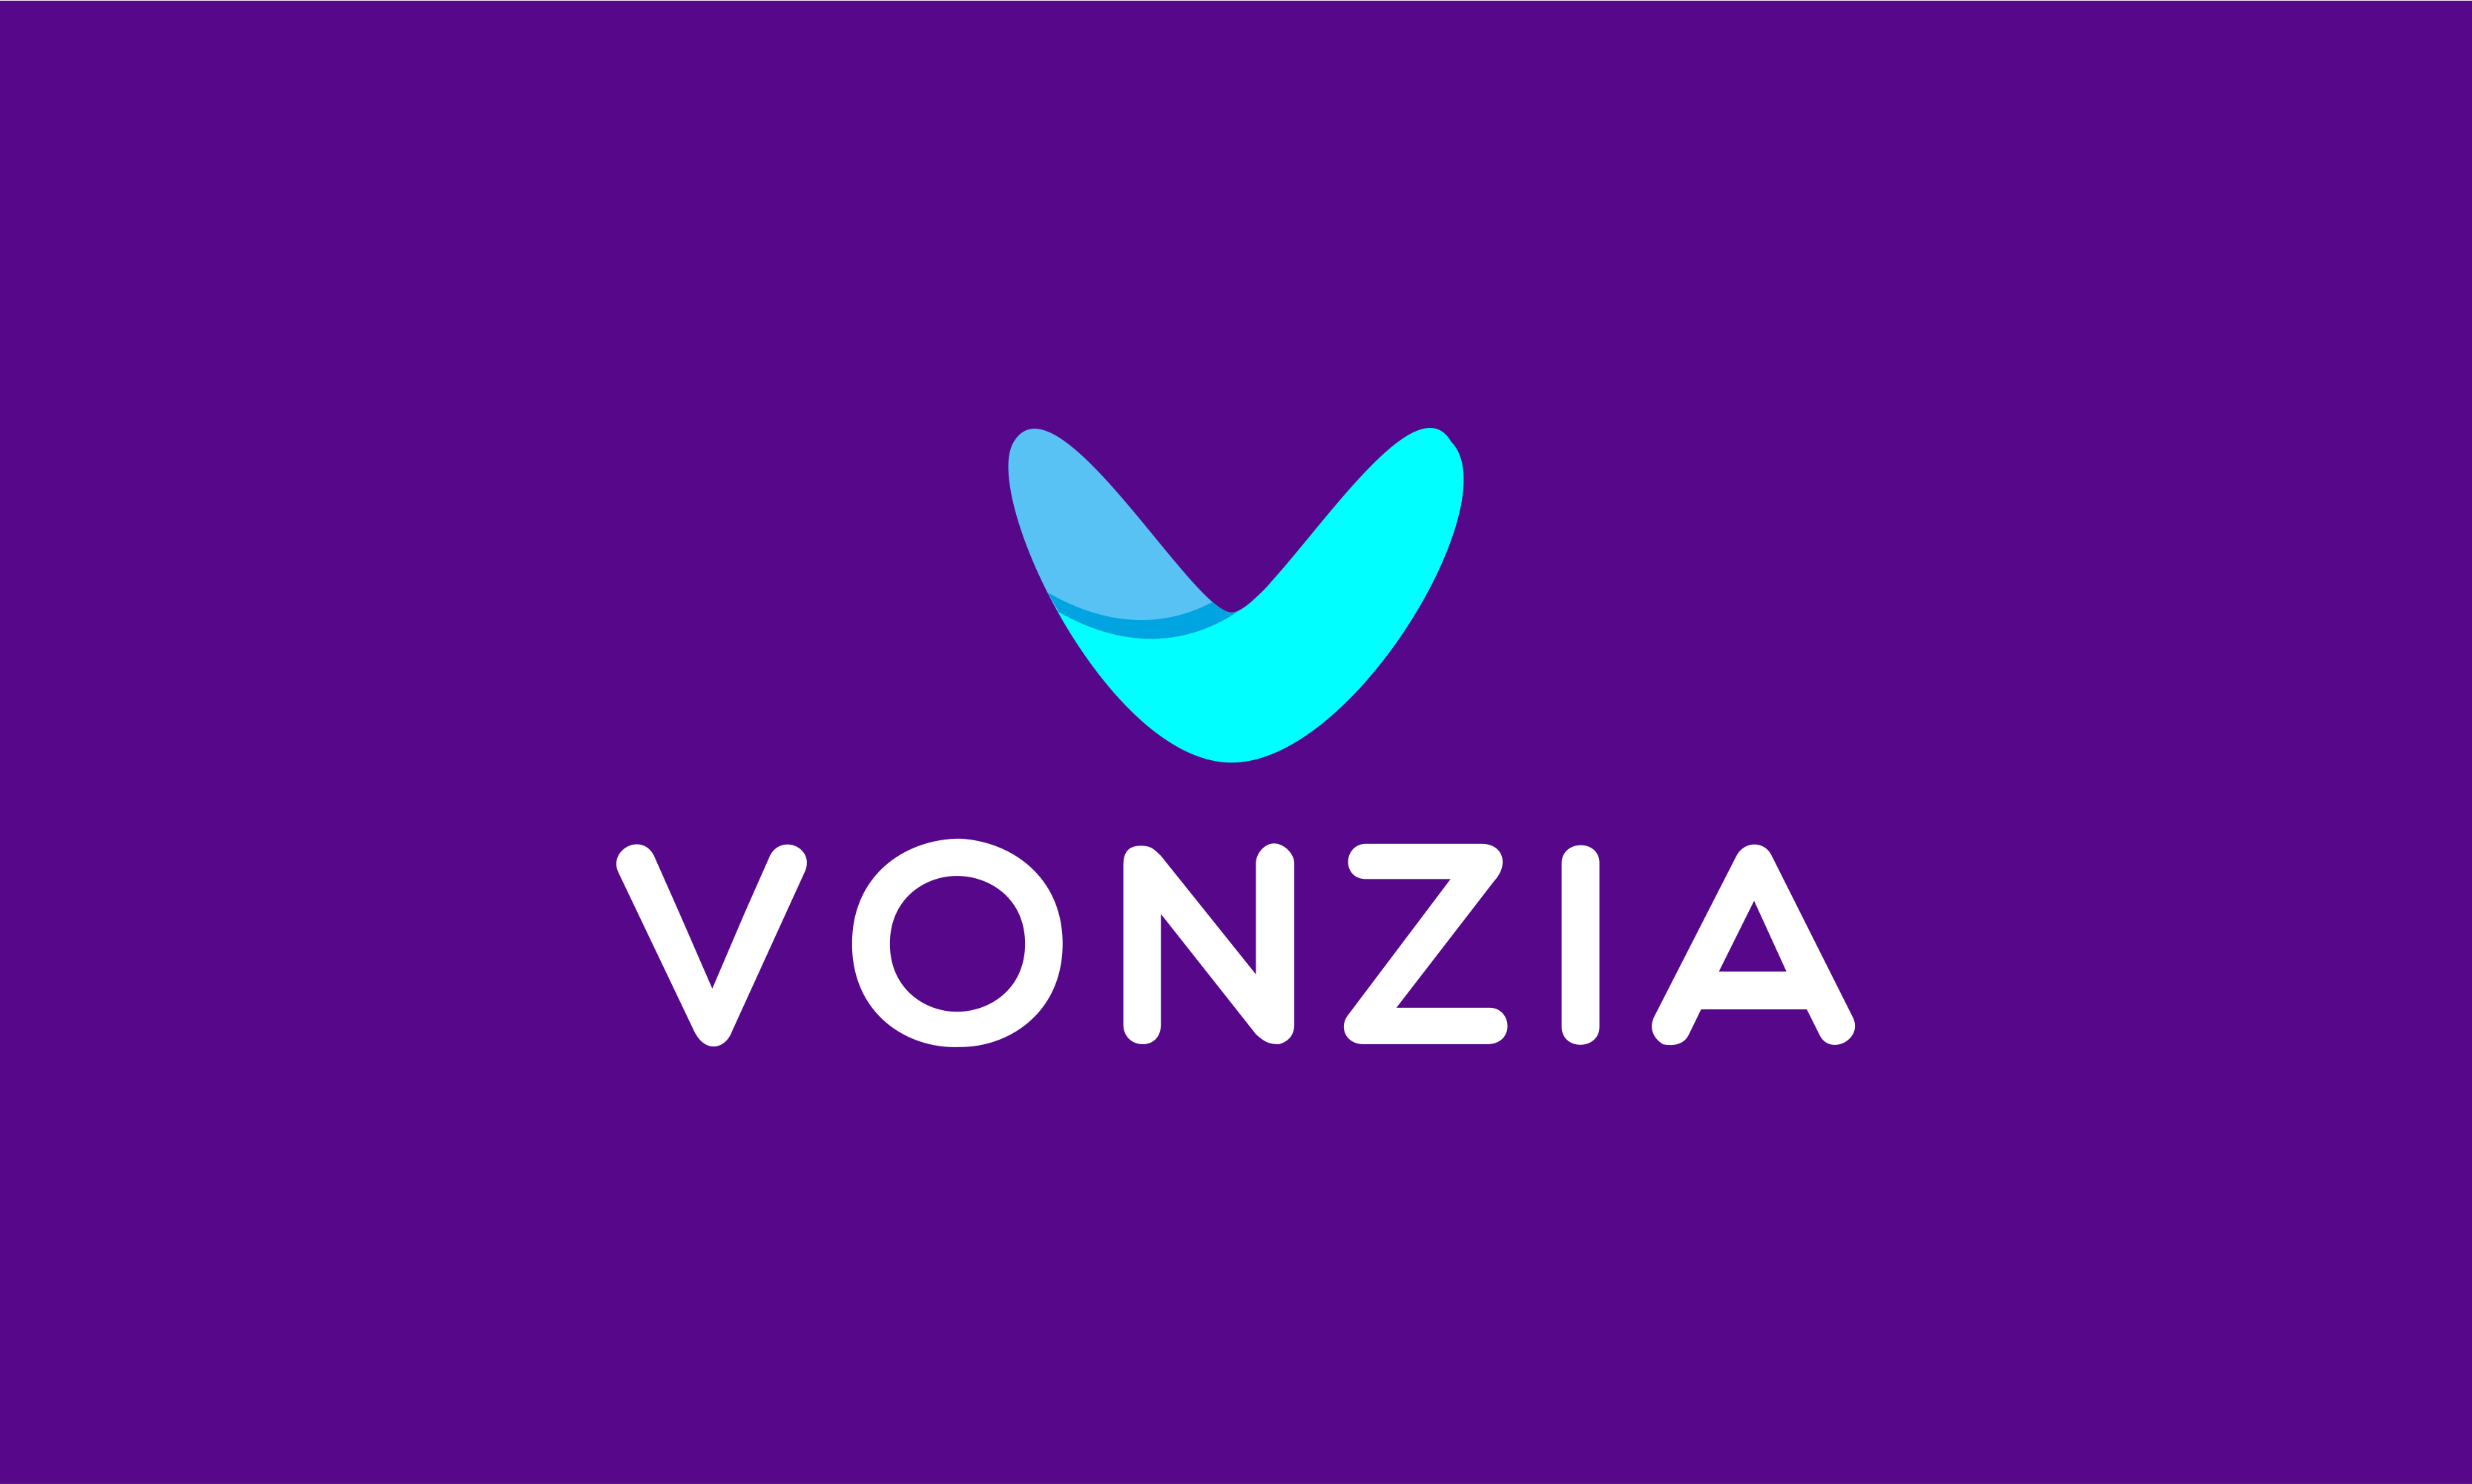 Vonzia - Media business name for sale